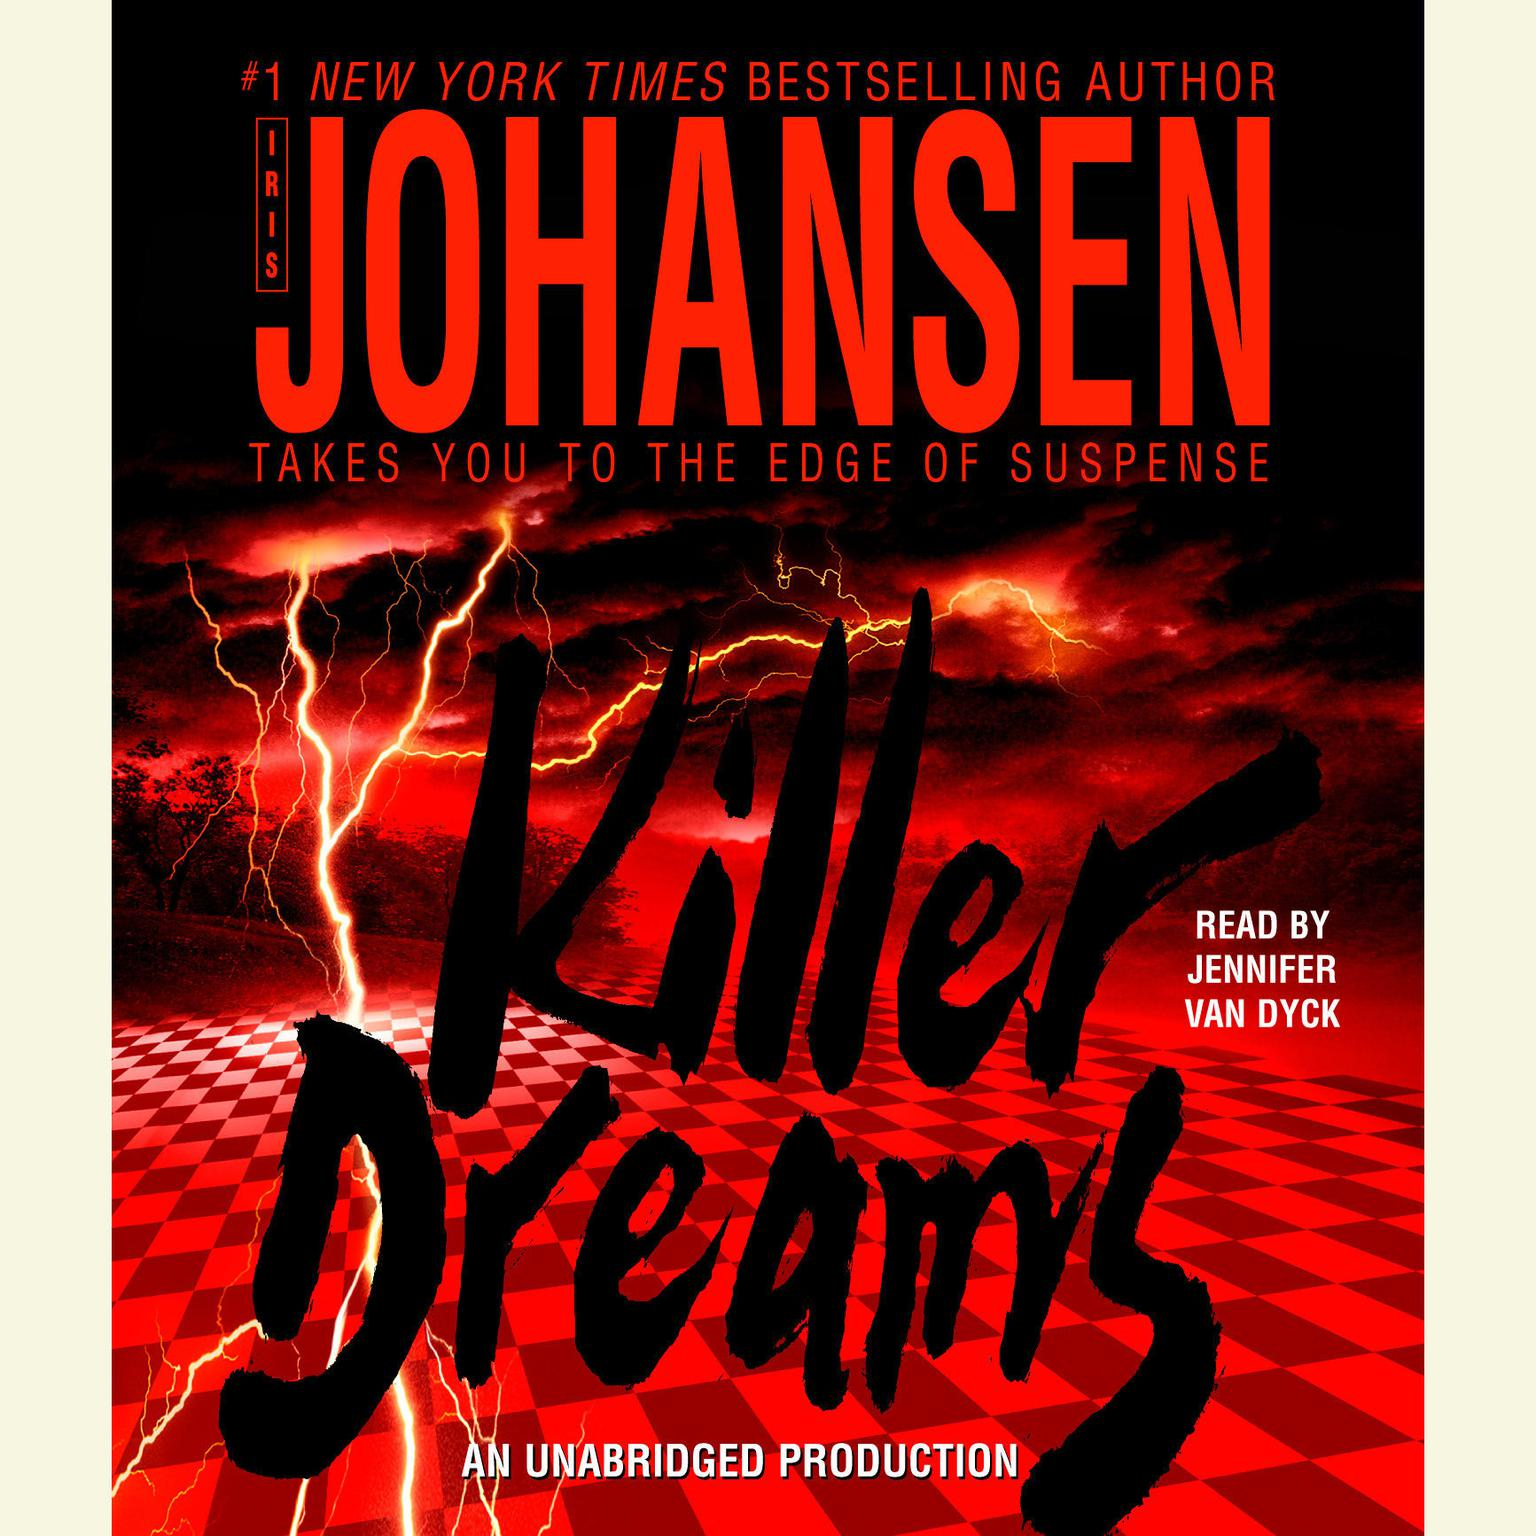 Killer Dreams Audiobook Listen Instantly